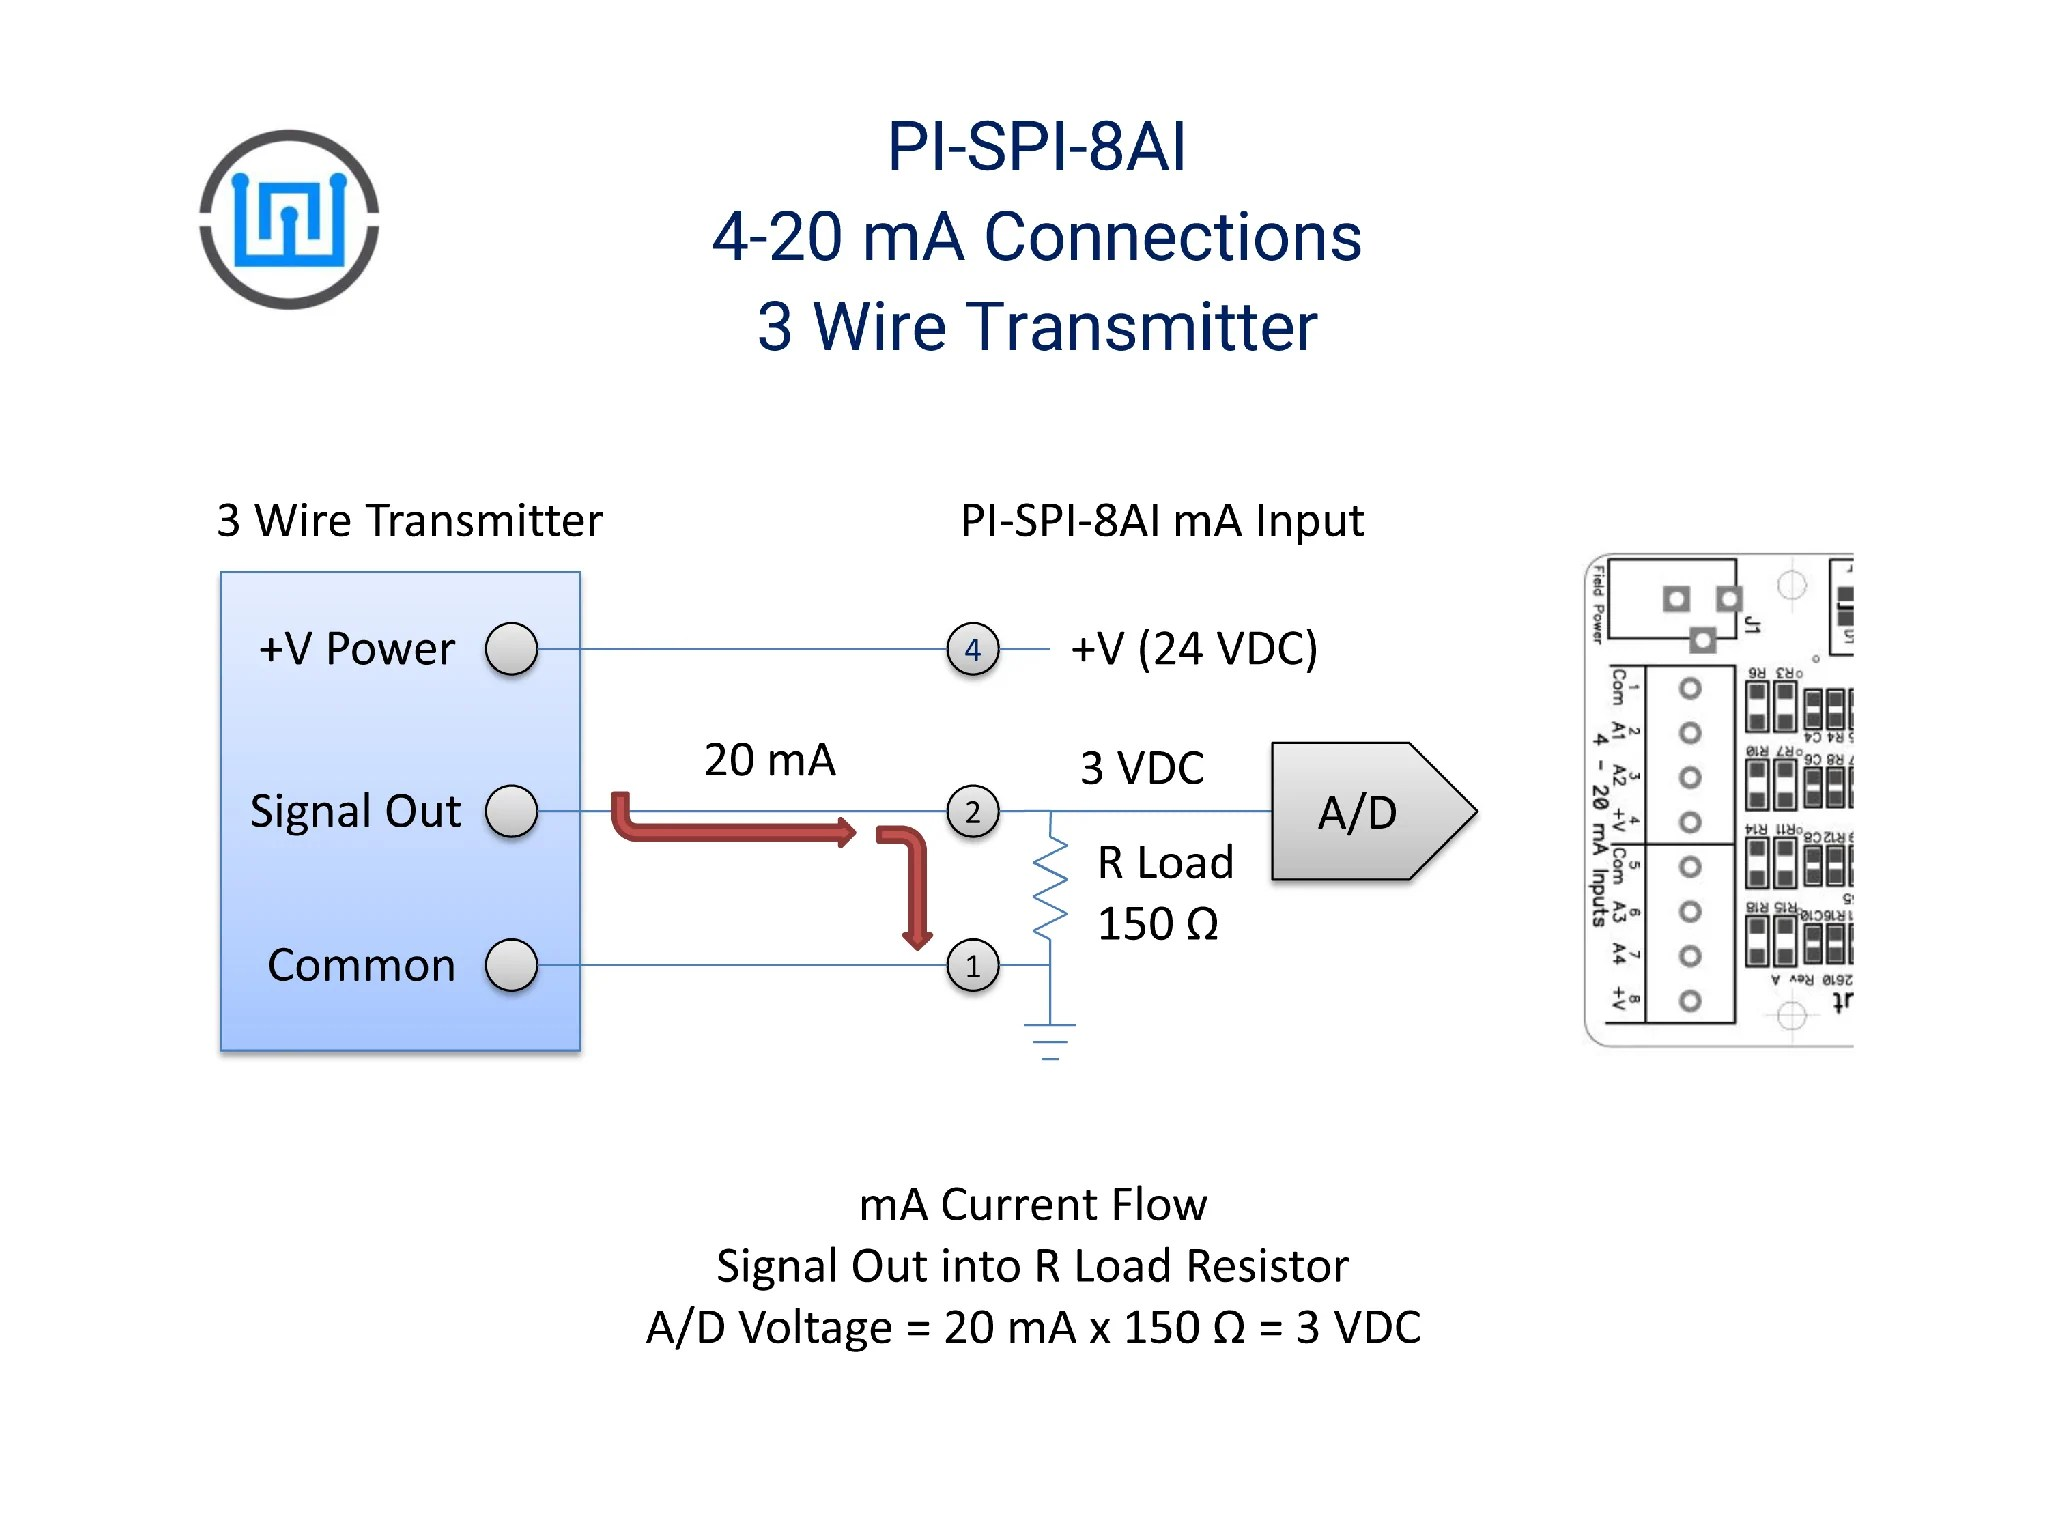 medium resolution of pi spi 8ai and a 2 wire transmitter